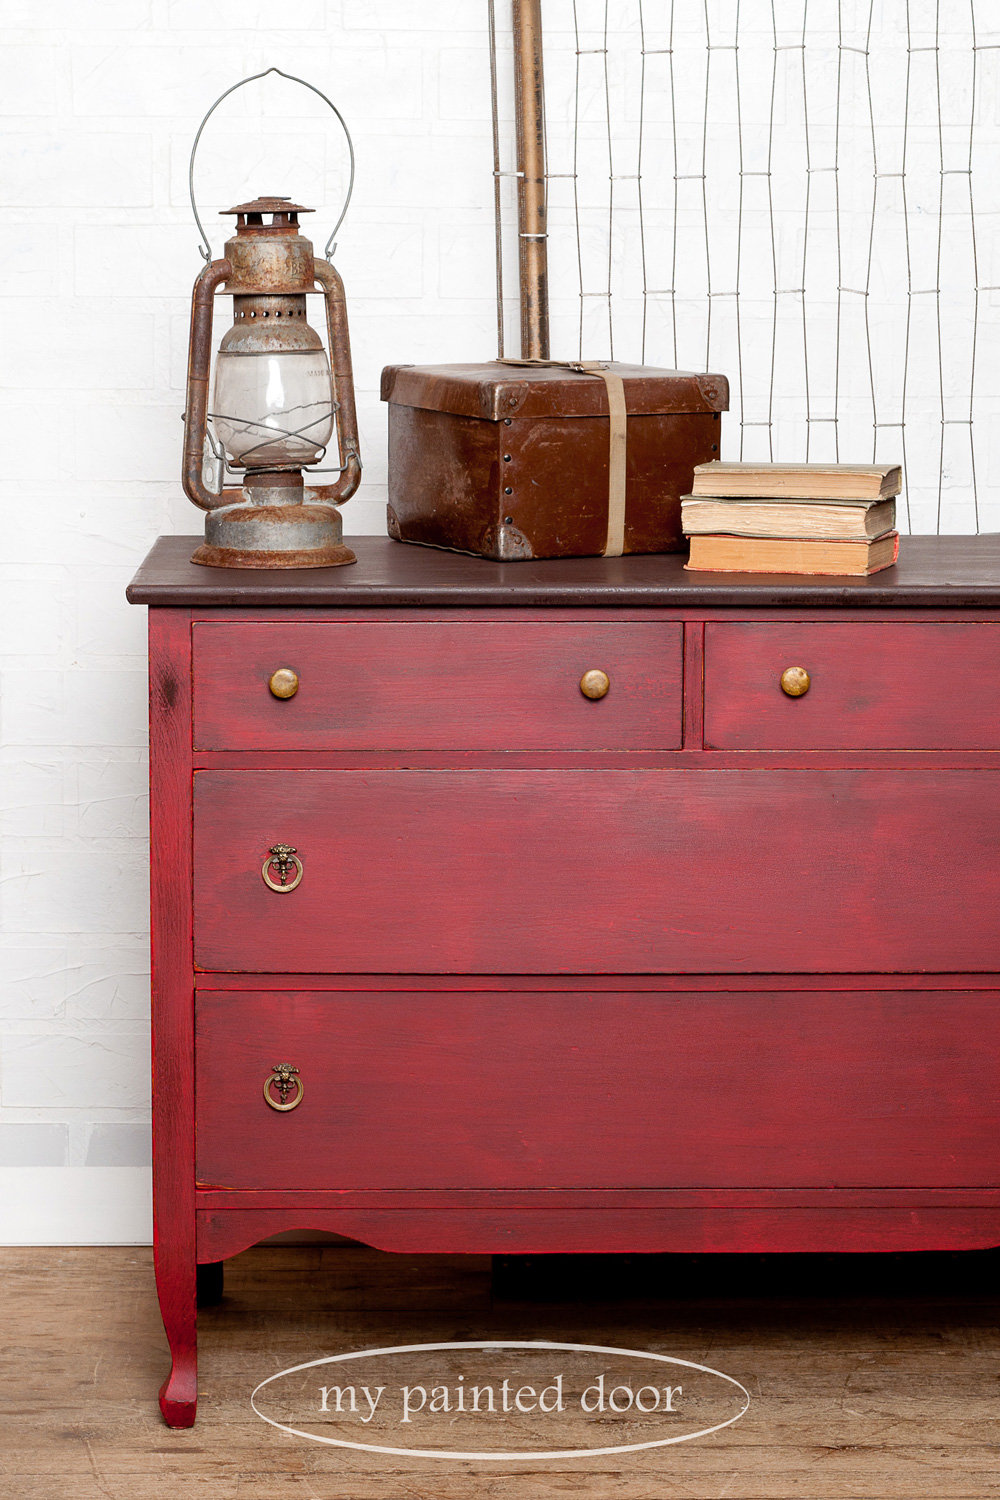 Dresser painted in Miss Mustard Seed's Milk Paint in Tricycle